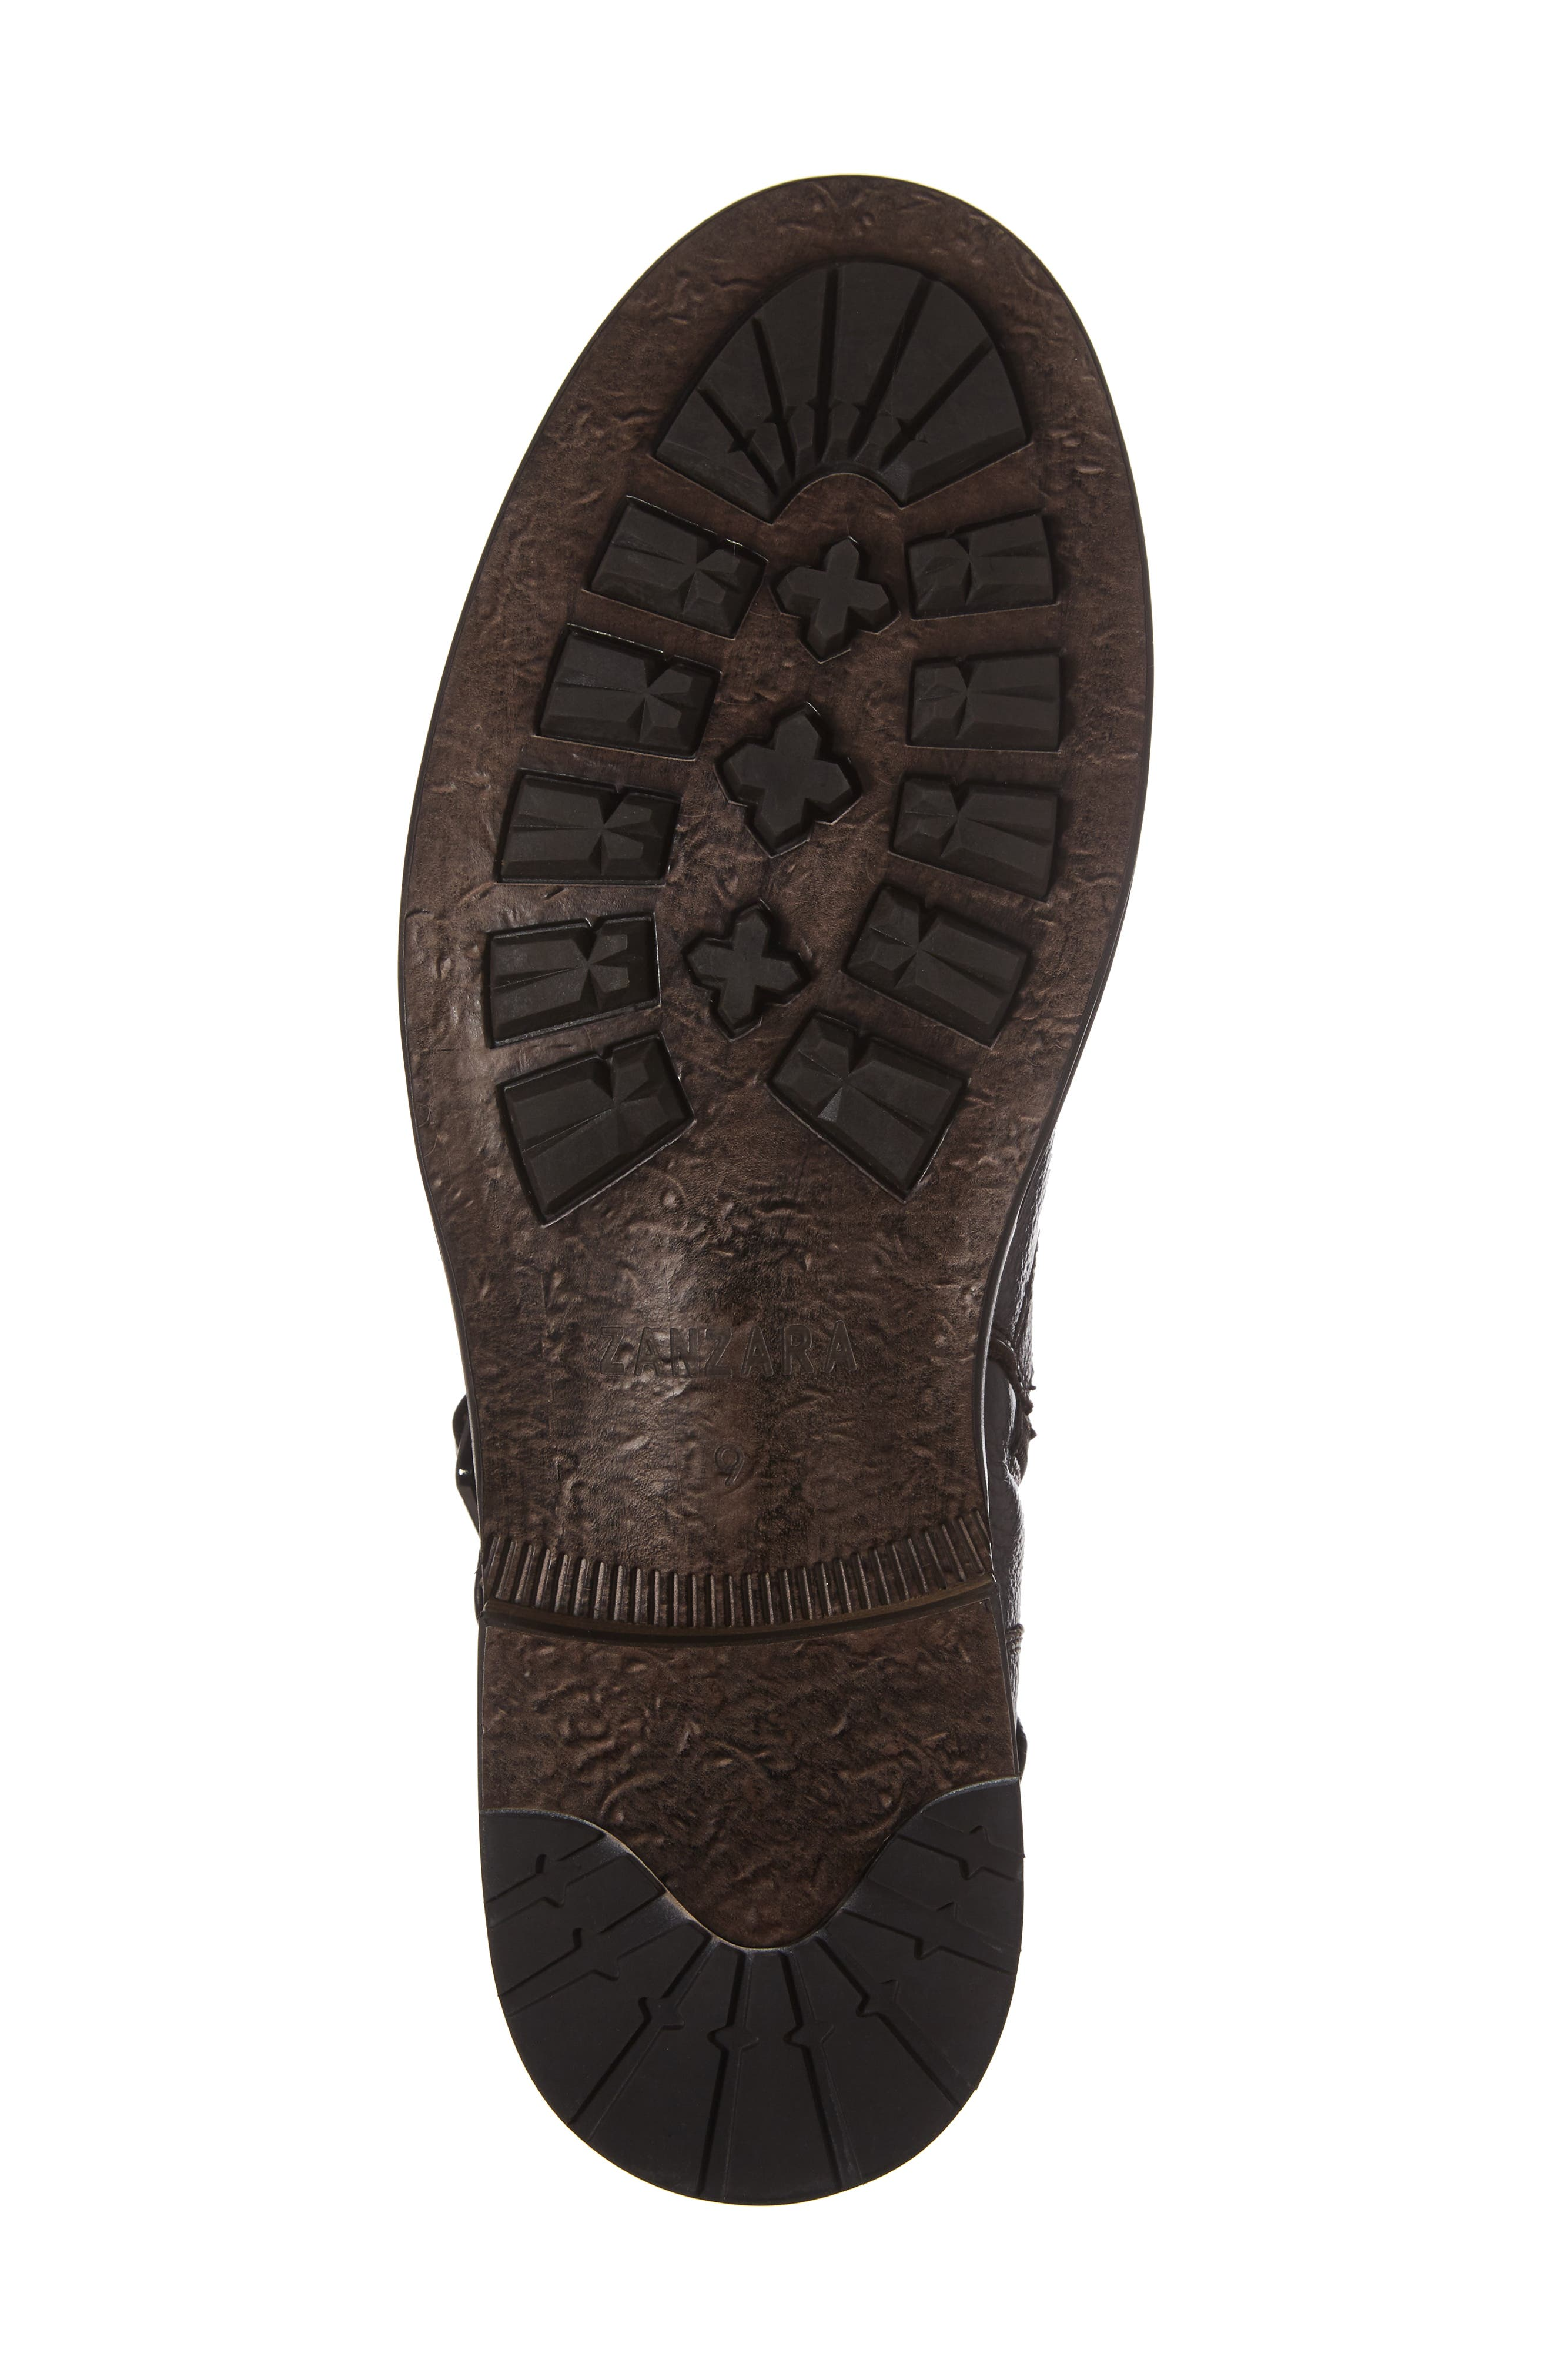 Howson Buckle Strap Boot,                             Alternate thumbnail 6, color,                             BROWN LEATHER